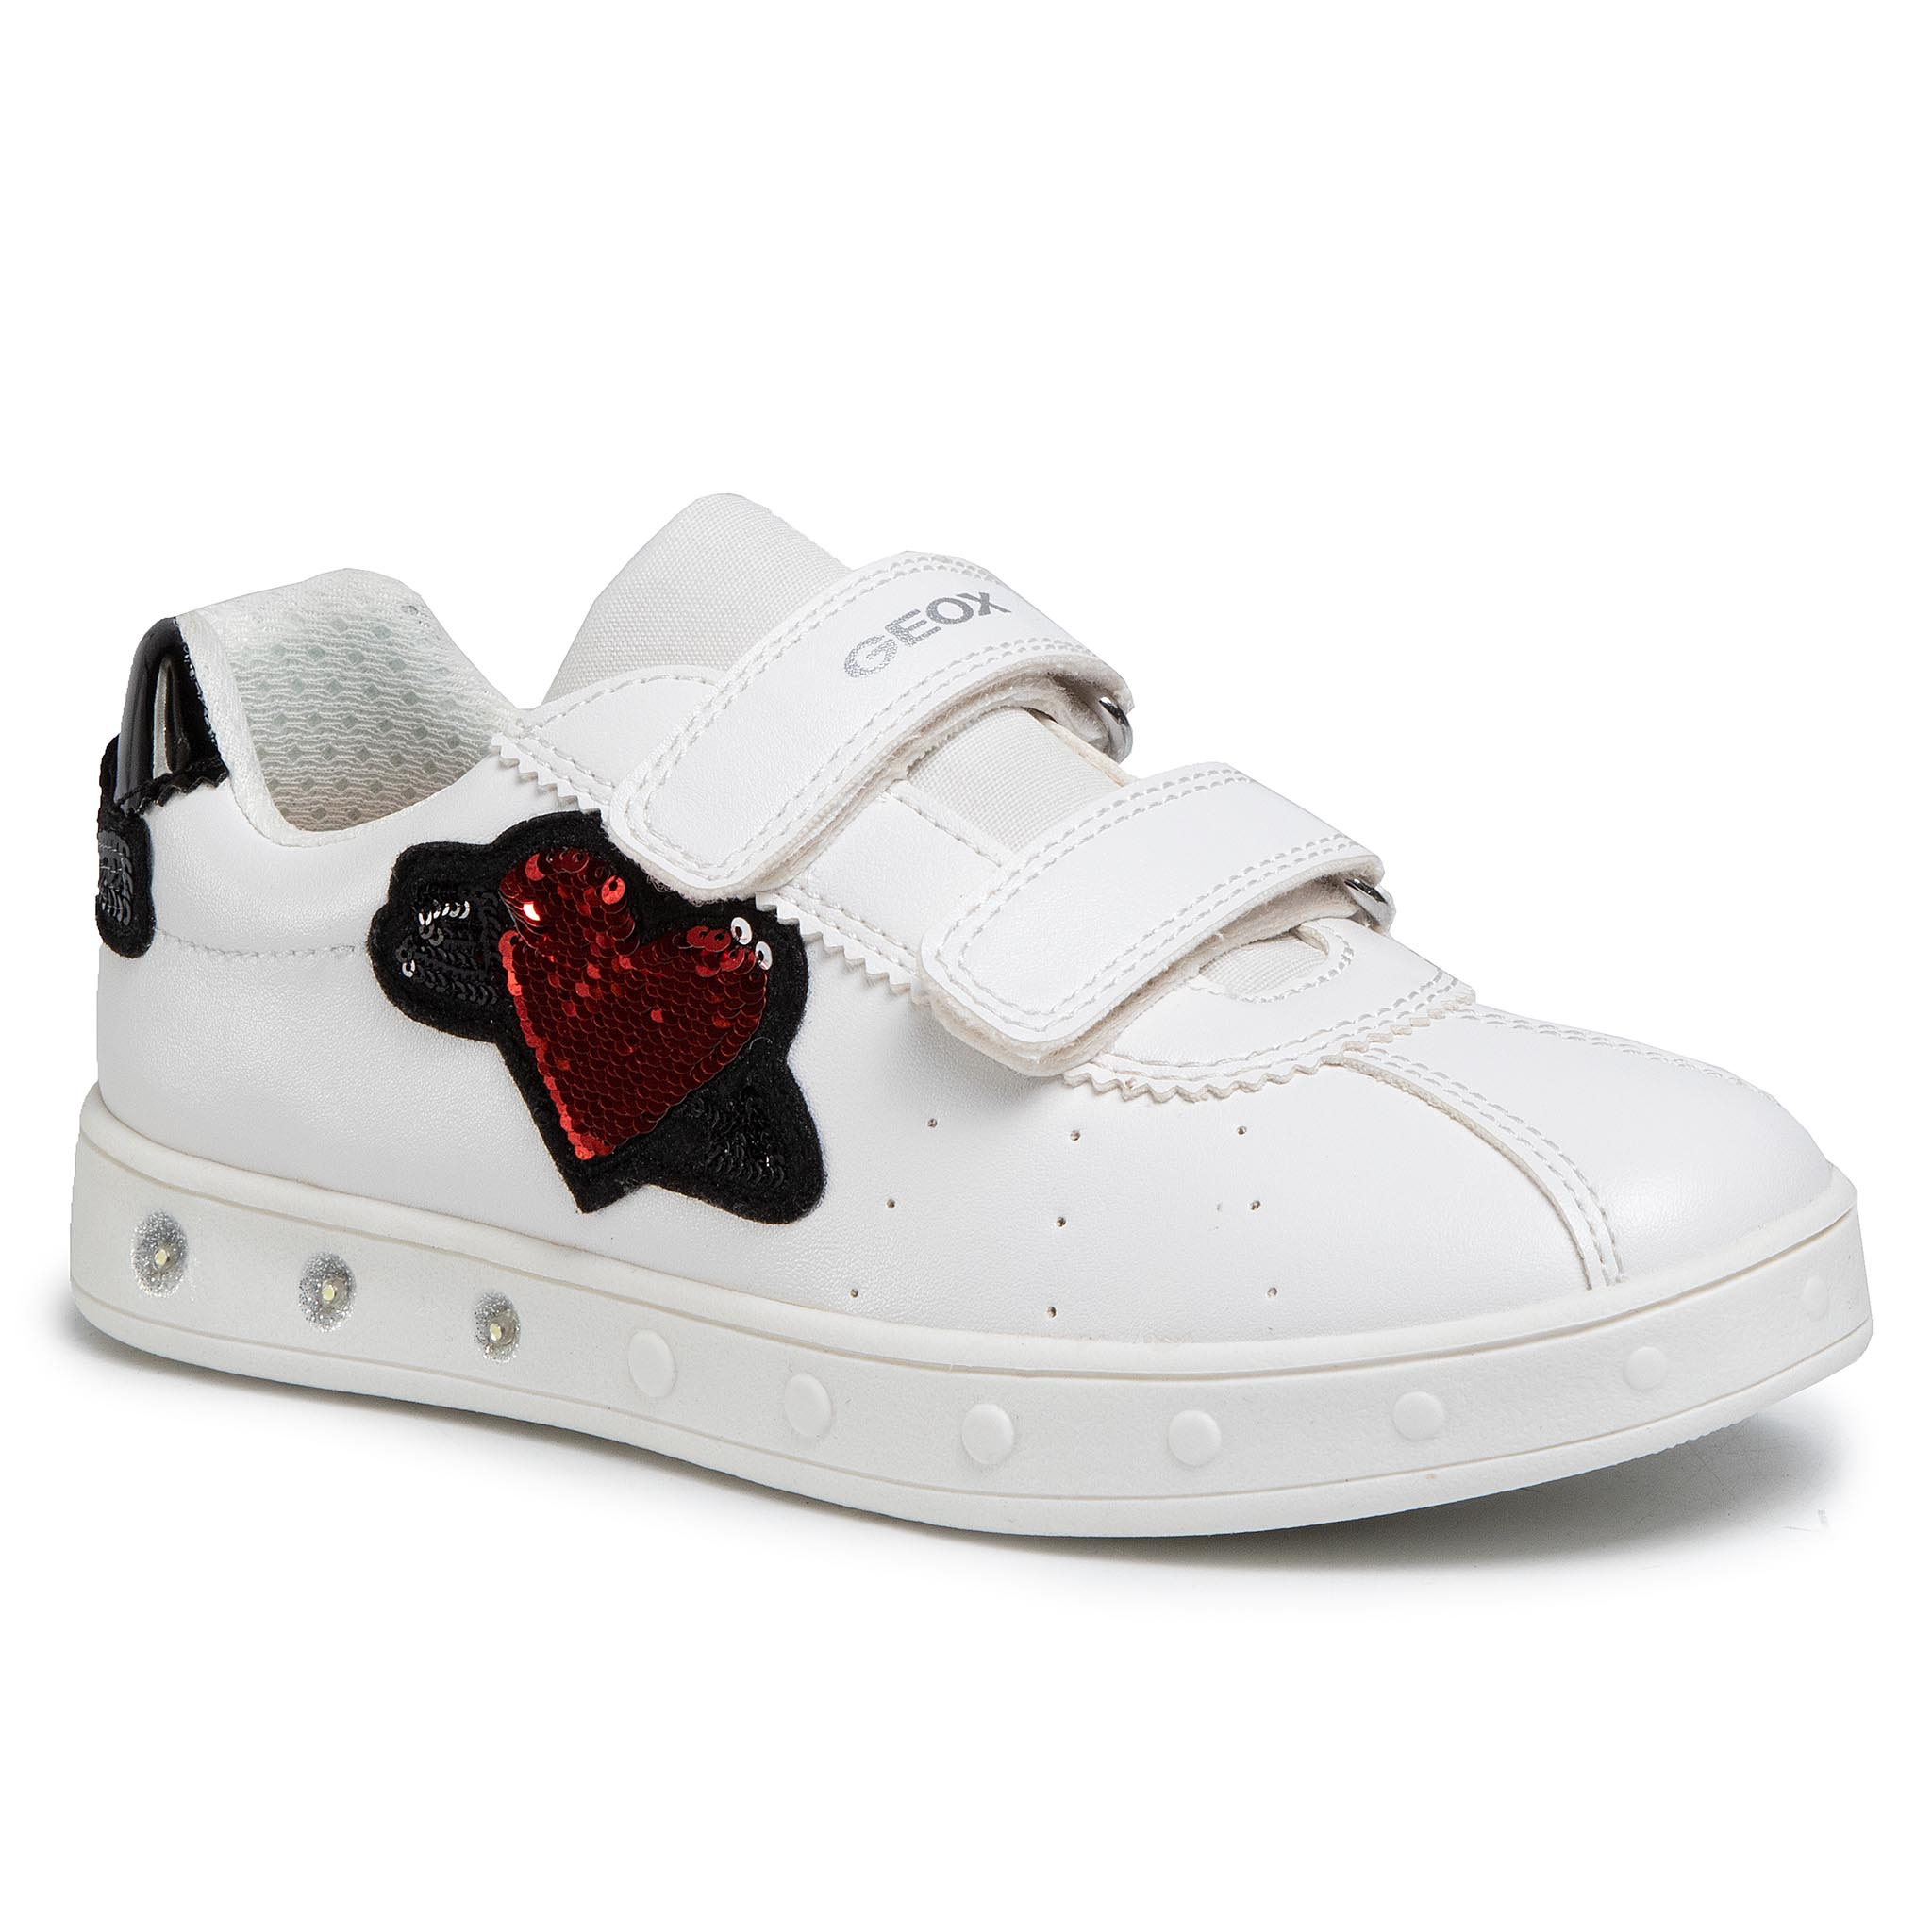 Sneakers GEOX - J Skylin G. C J928WC 000BC C1000 D White